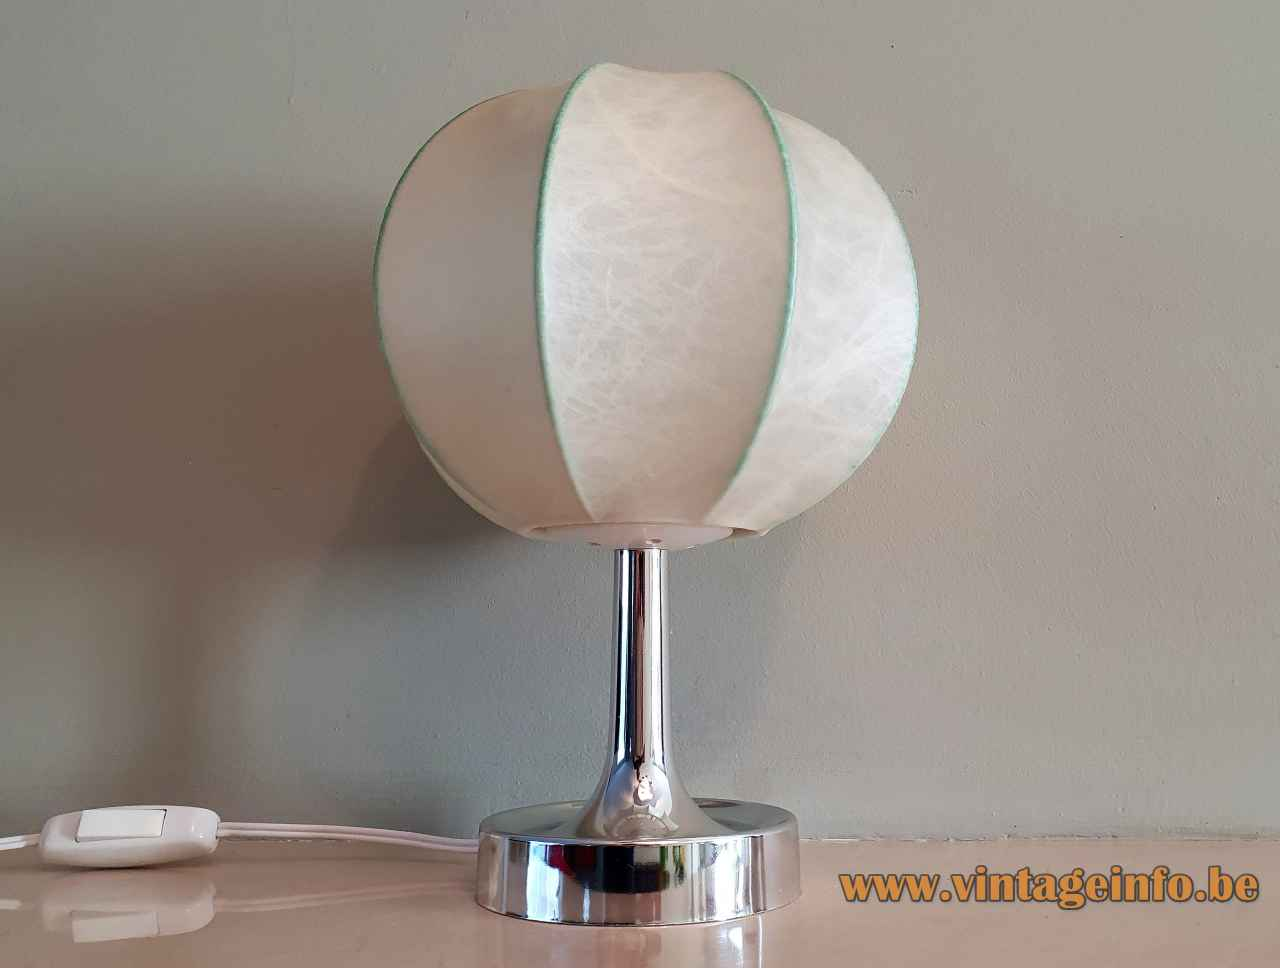 Goldkant Leuchten Salbo table lamp round chrome base cocoon plastic globe lampshade 1960s 1970s Germany